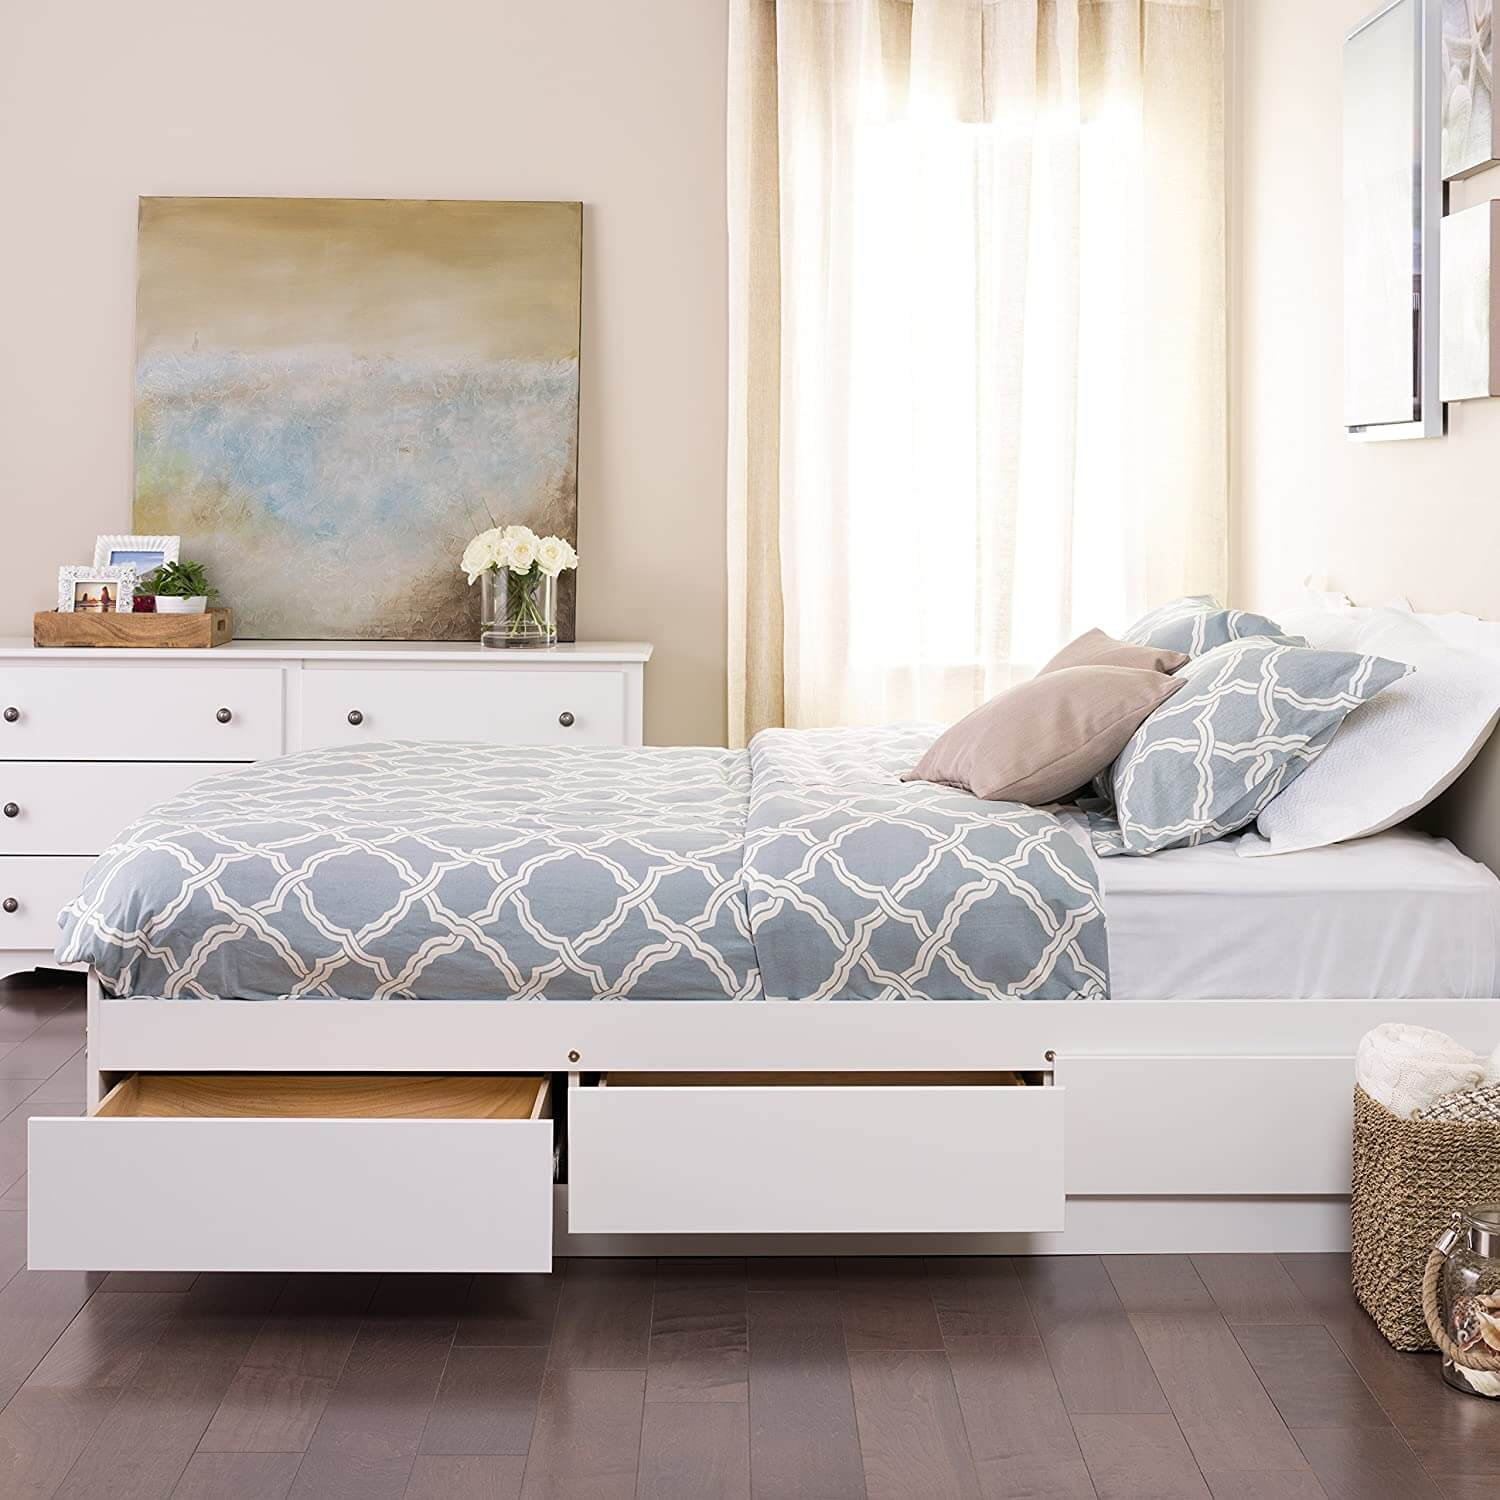 Clothing Storage Ideas for Small Bedroom